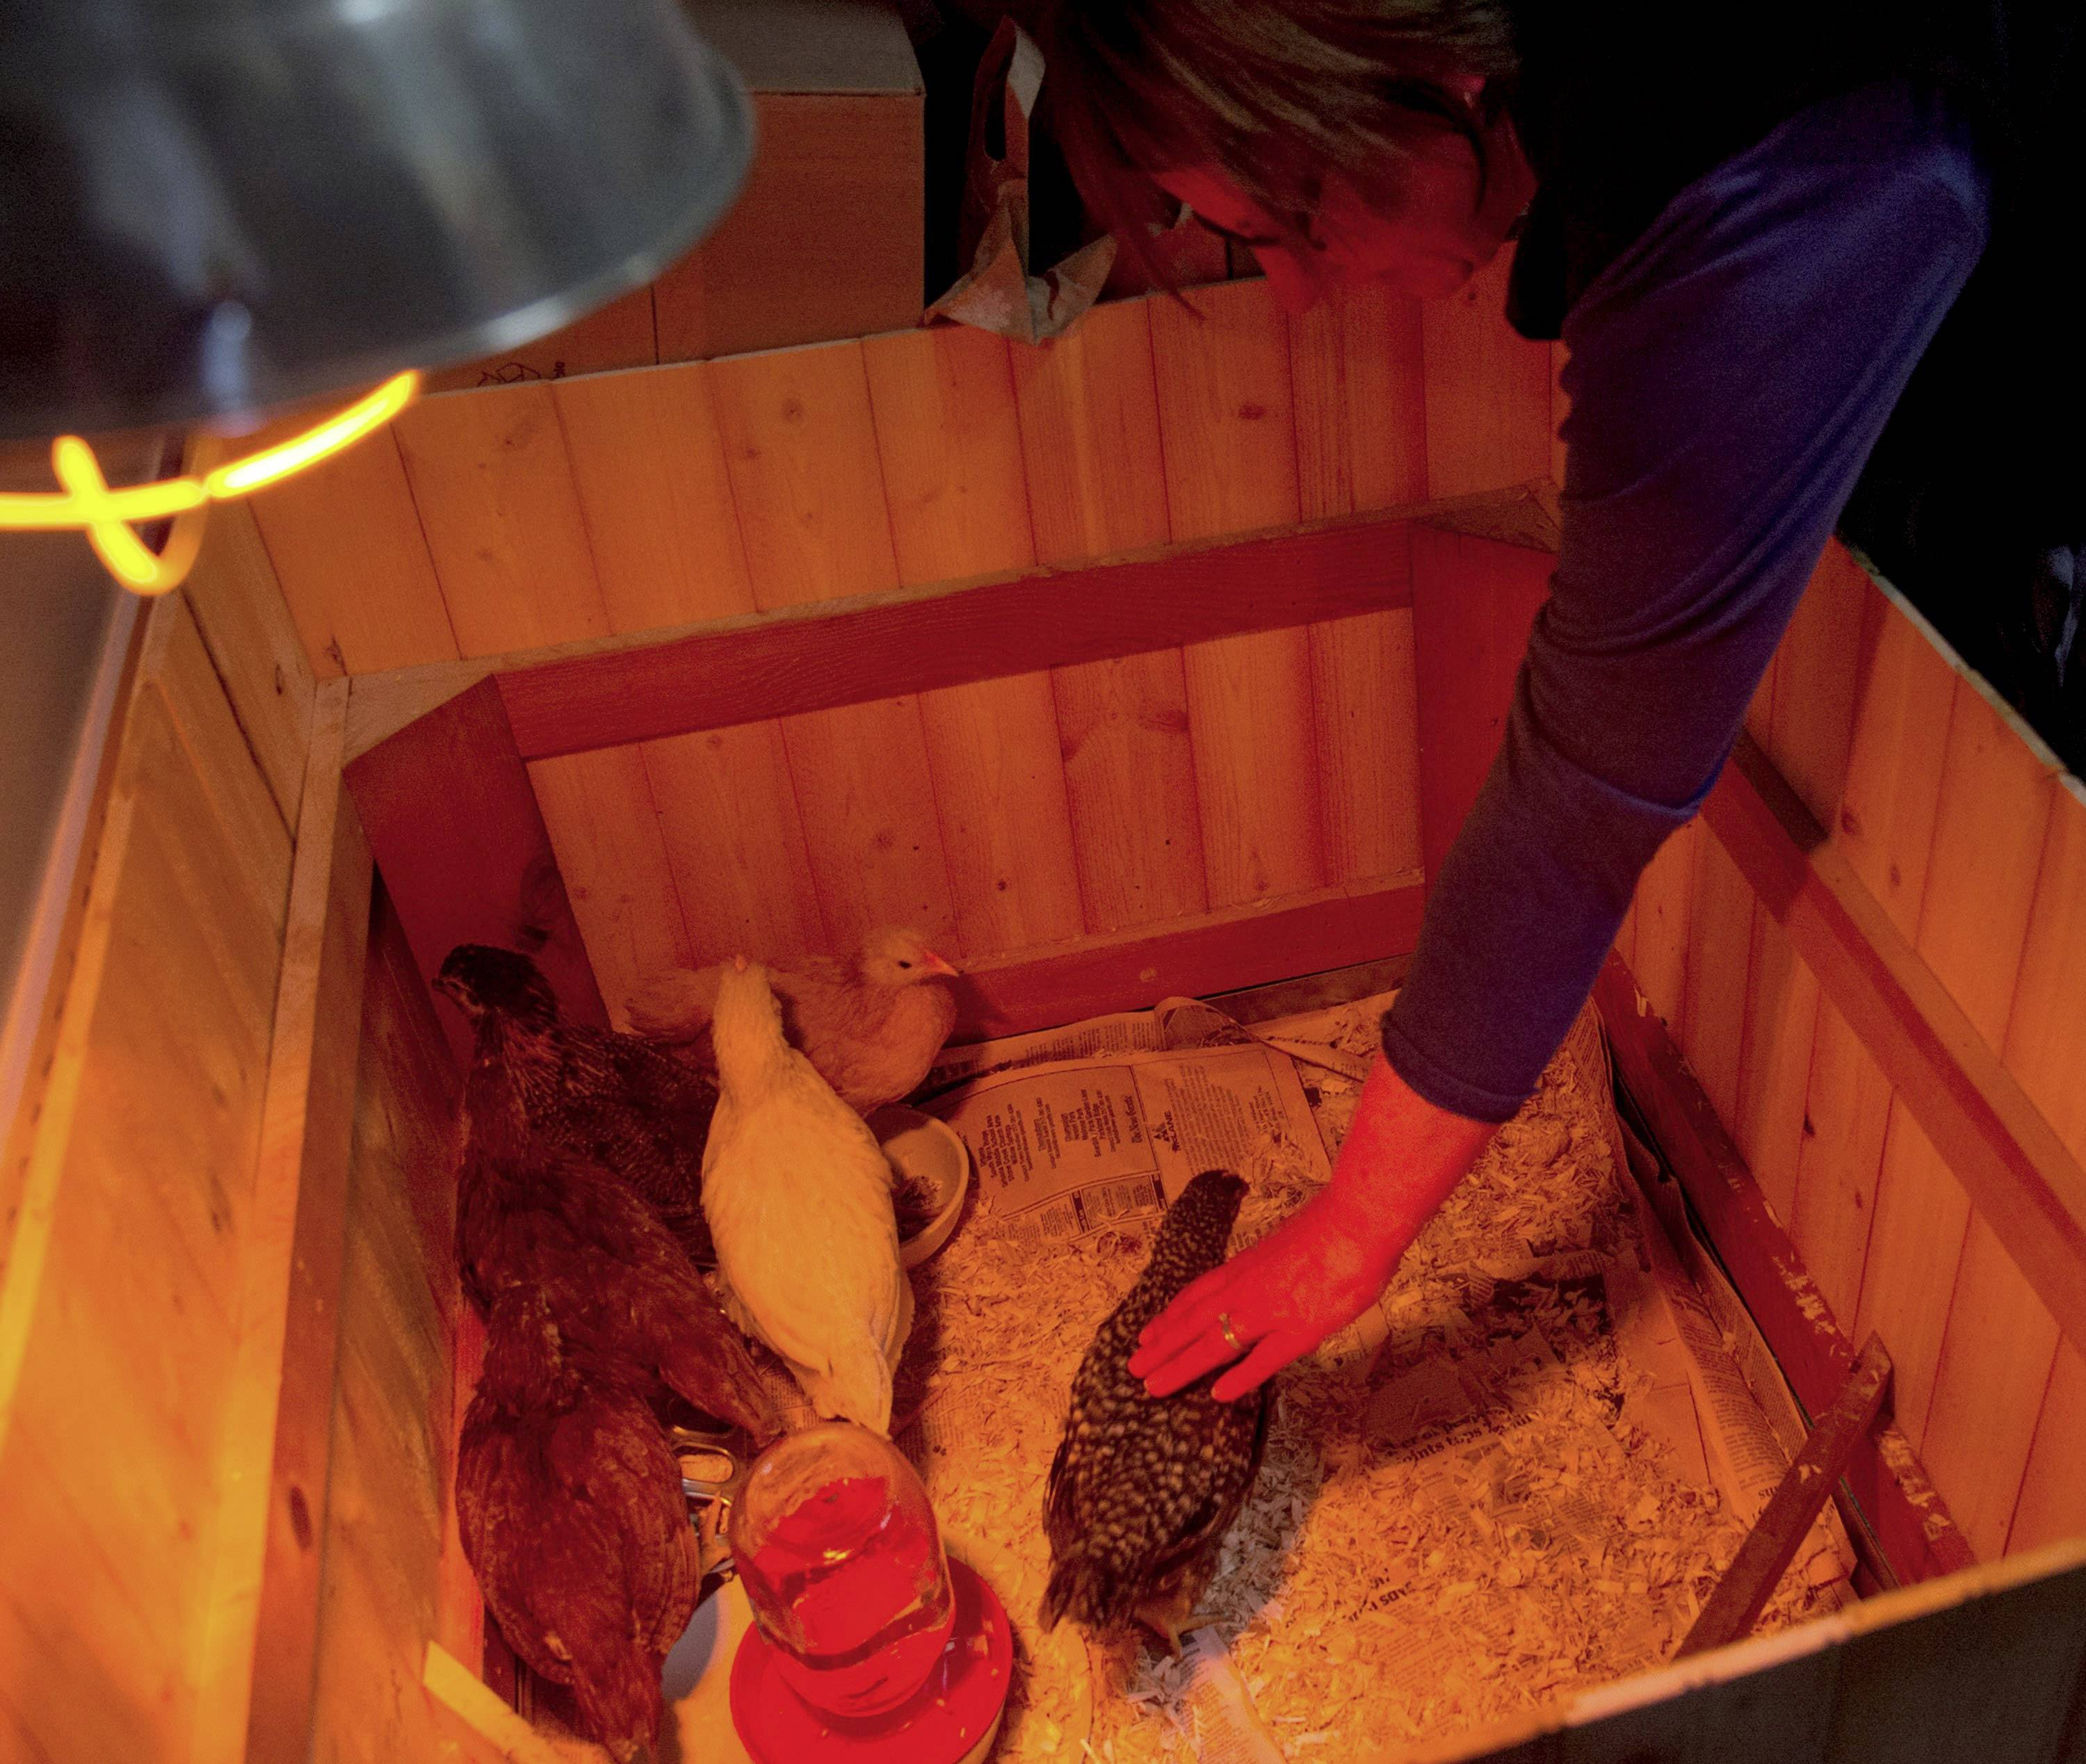 Angie Wolske pets one of her chickens, which shares space with other feathered friends under a heat lamp at her home in Champaign (AP Photo/The News-Gazette, Heather Coit) MANDATORY CREDIT